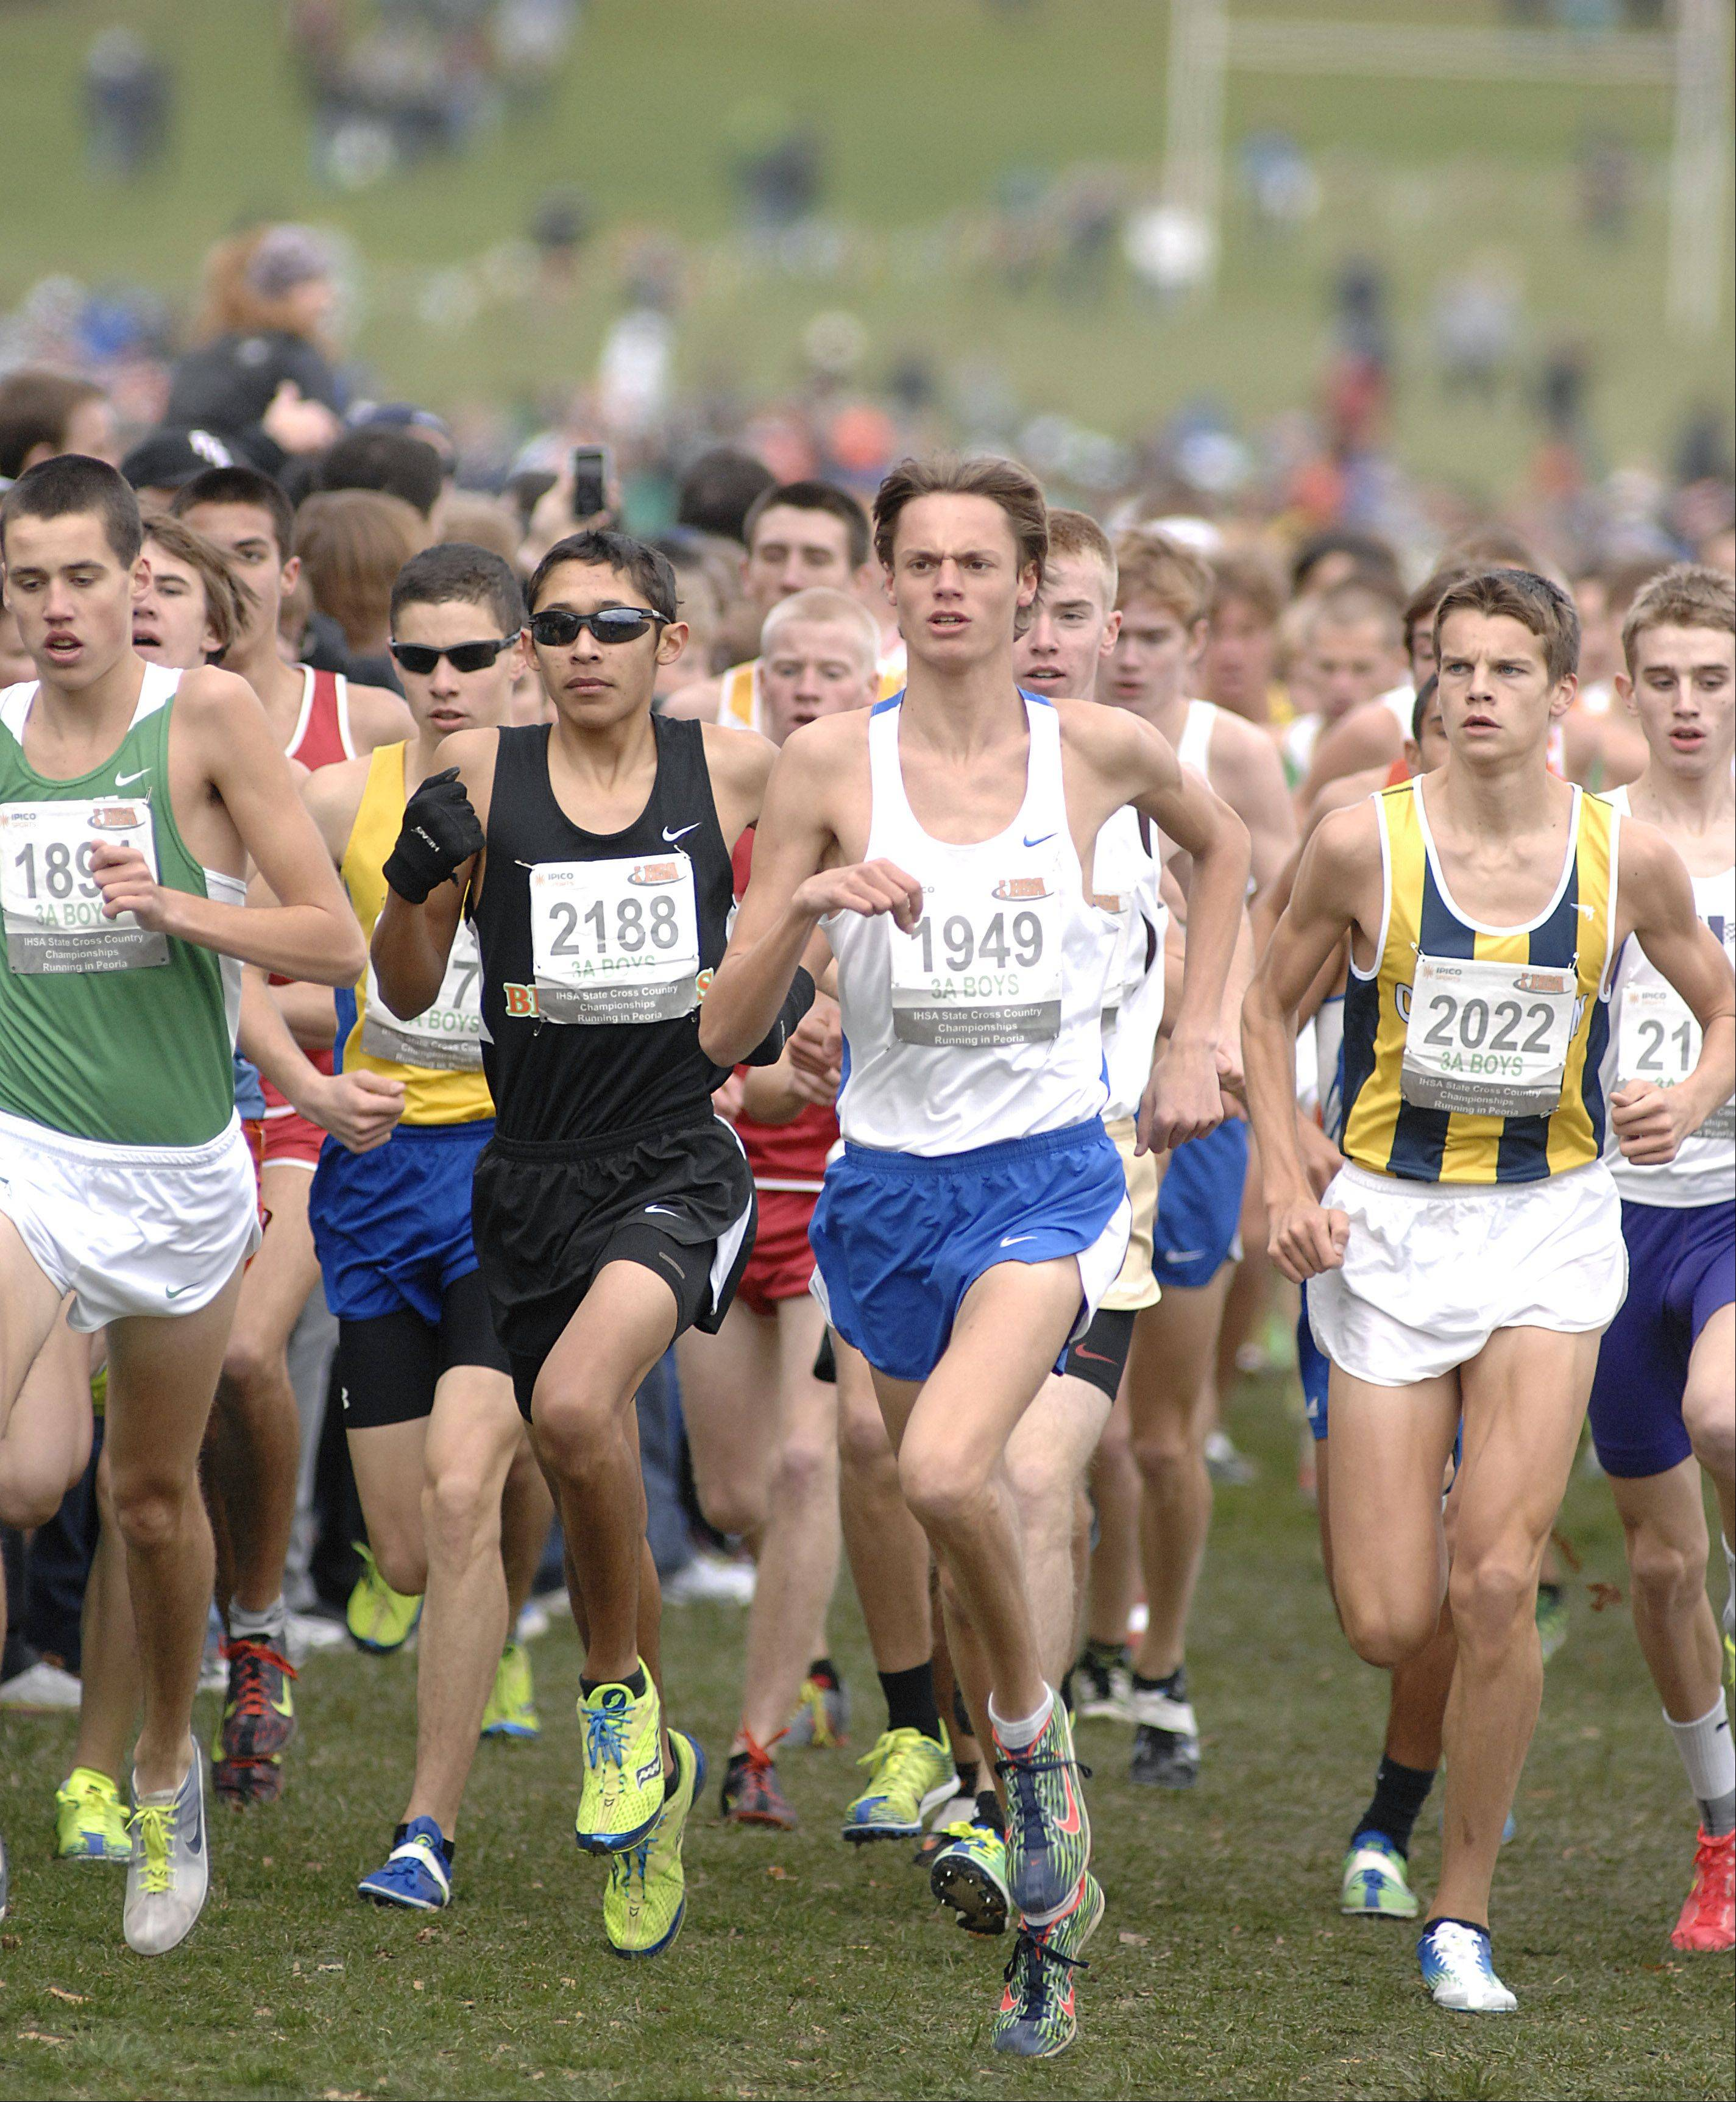 Laura Stoecker/lstoecker@dailyherald.comLake Zurich's Alex Milner (1949) leads the pack in the state cross country 3A final in Peoria on Saturday, November 3.